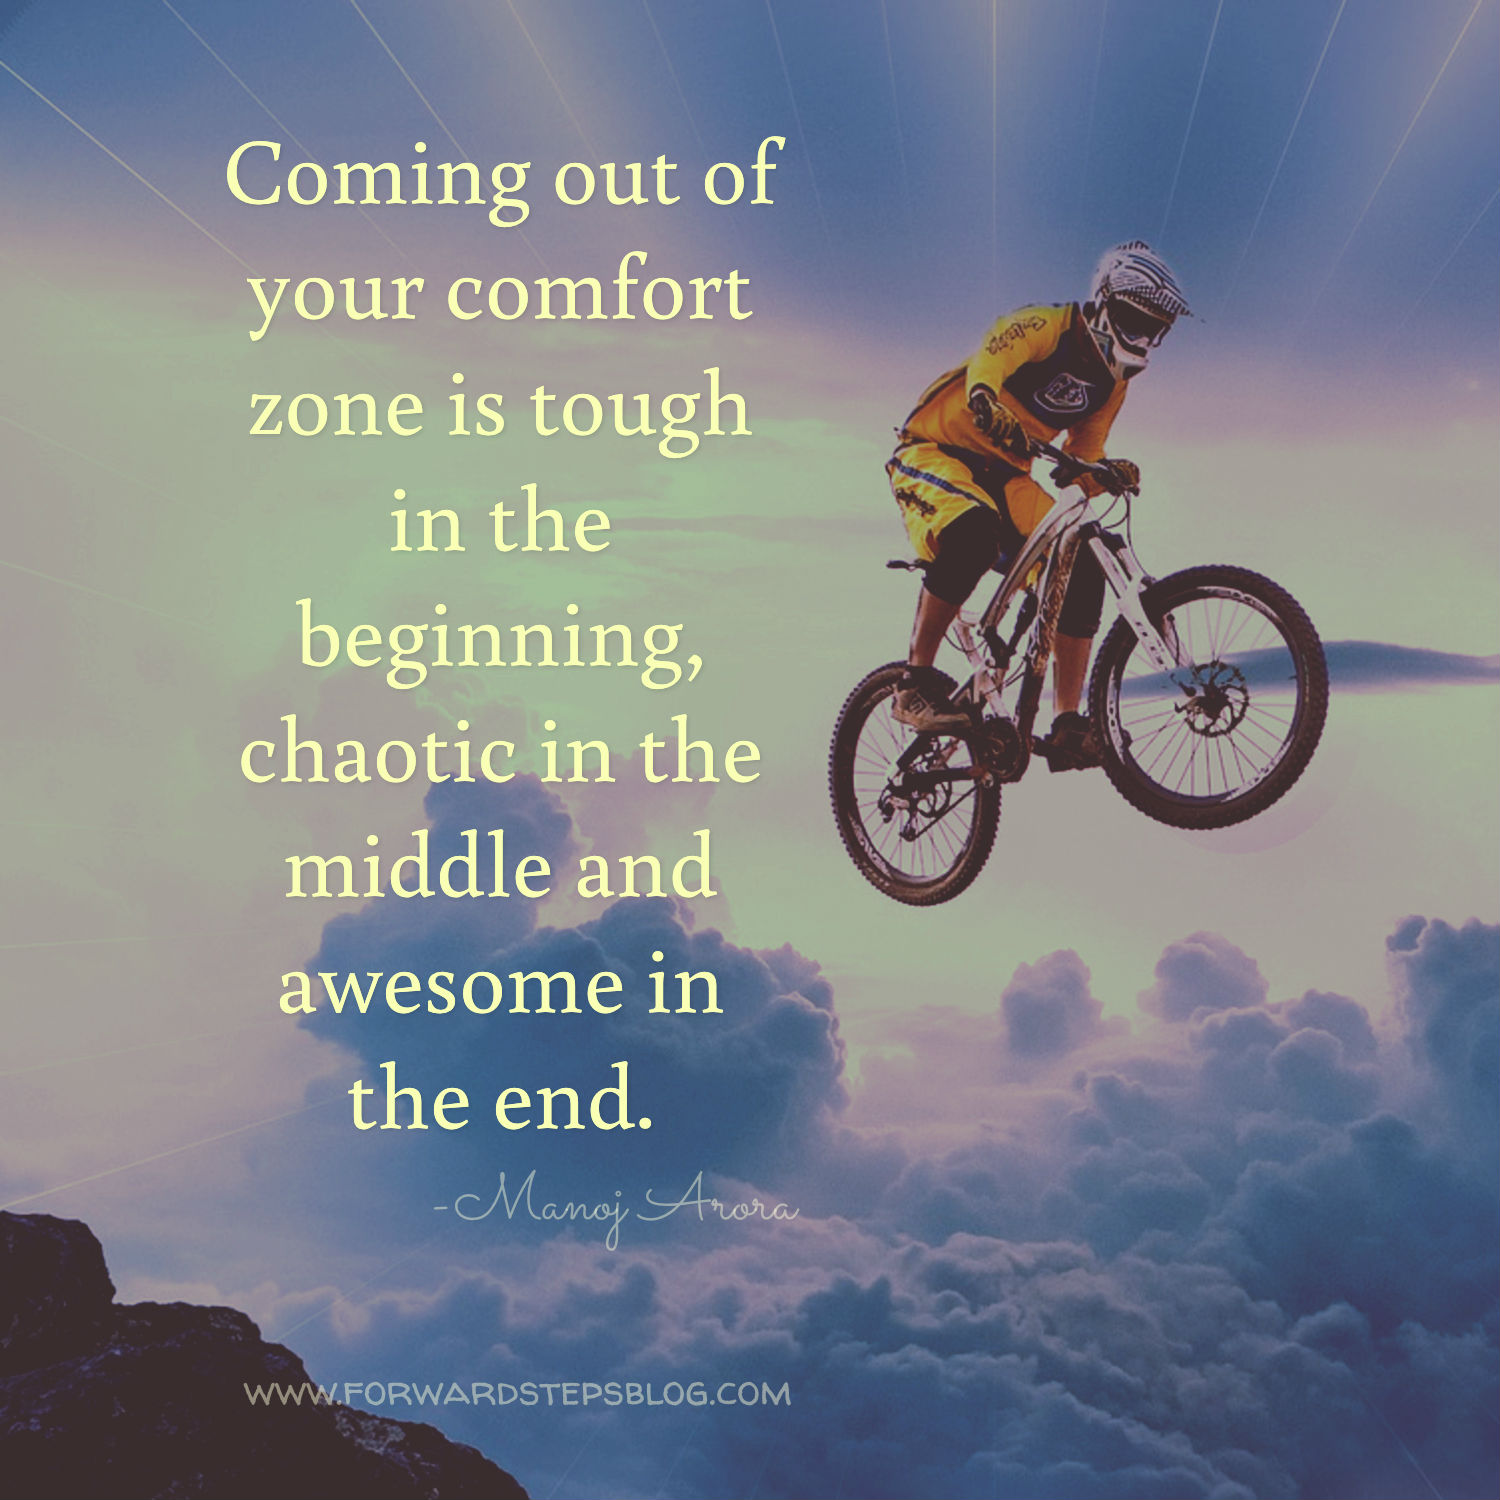 Comfort Zone - Forward Steps image_1